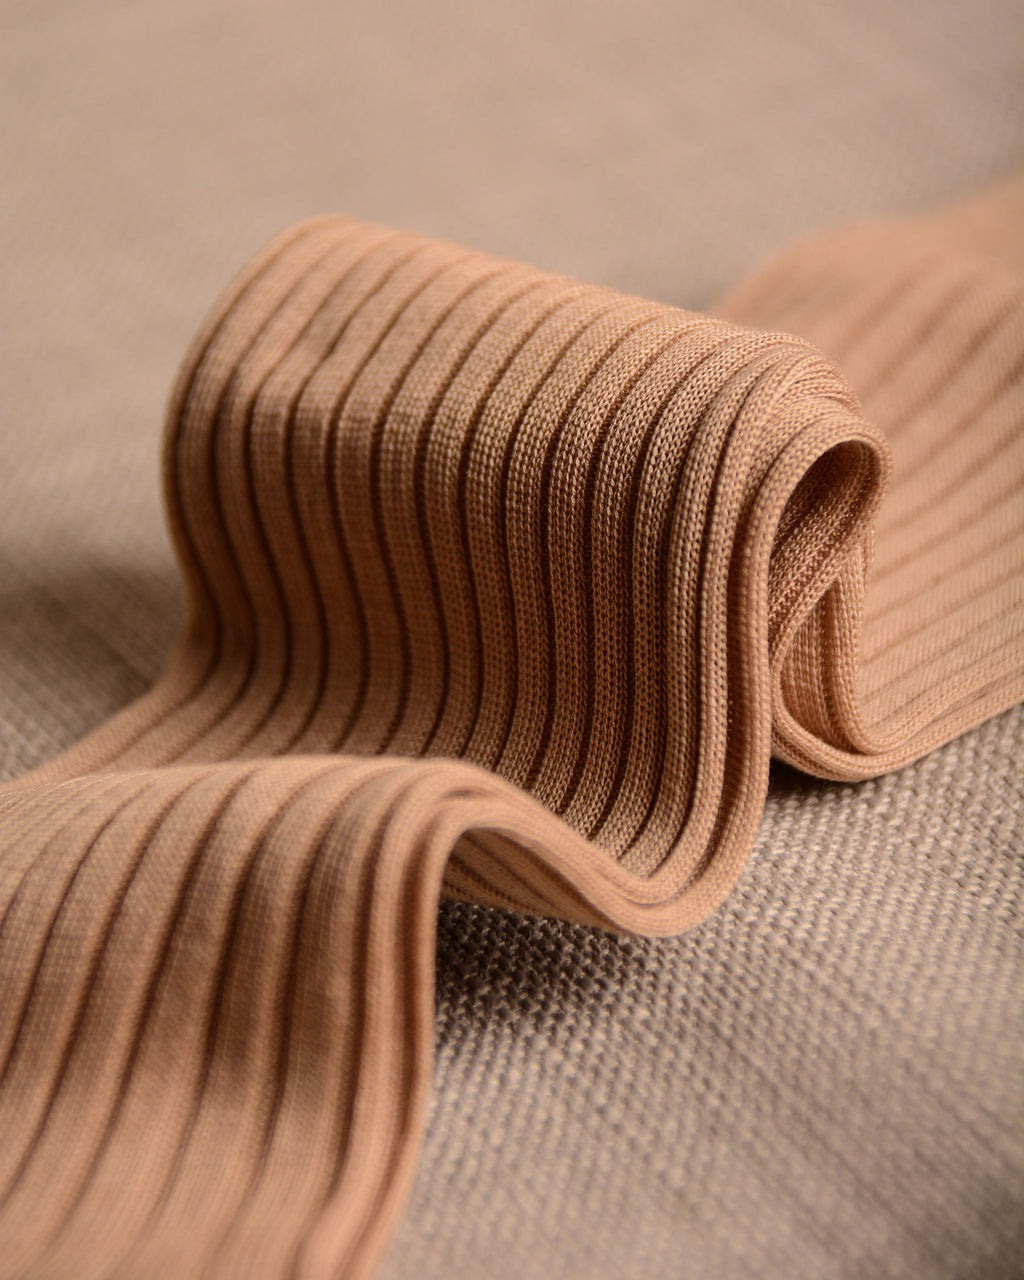 Pantherella Socks - Cotton Beige